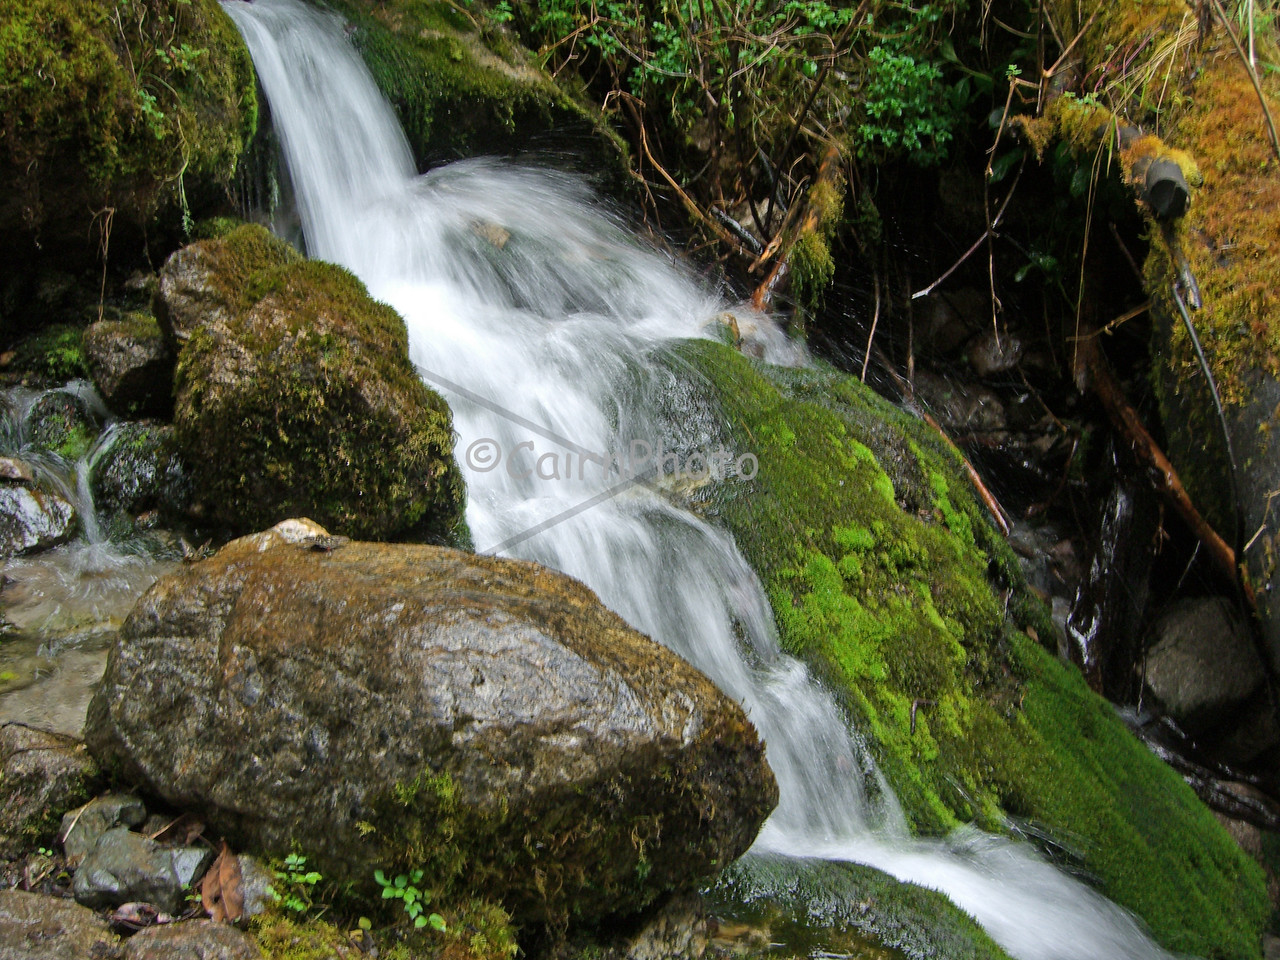 It rains a lot in Peru so creeks, streams and lush green plants were common.